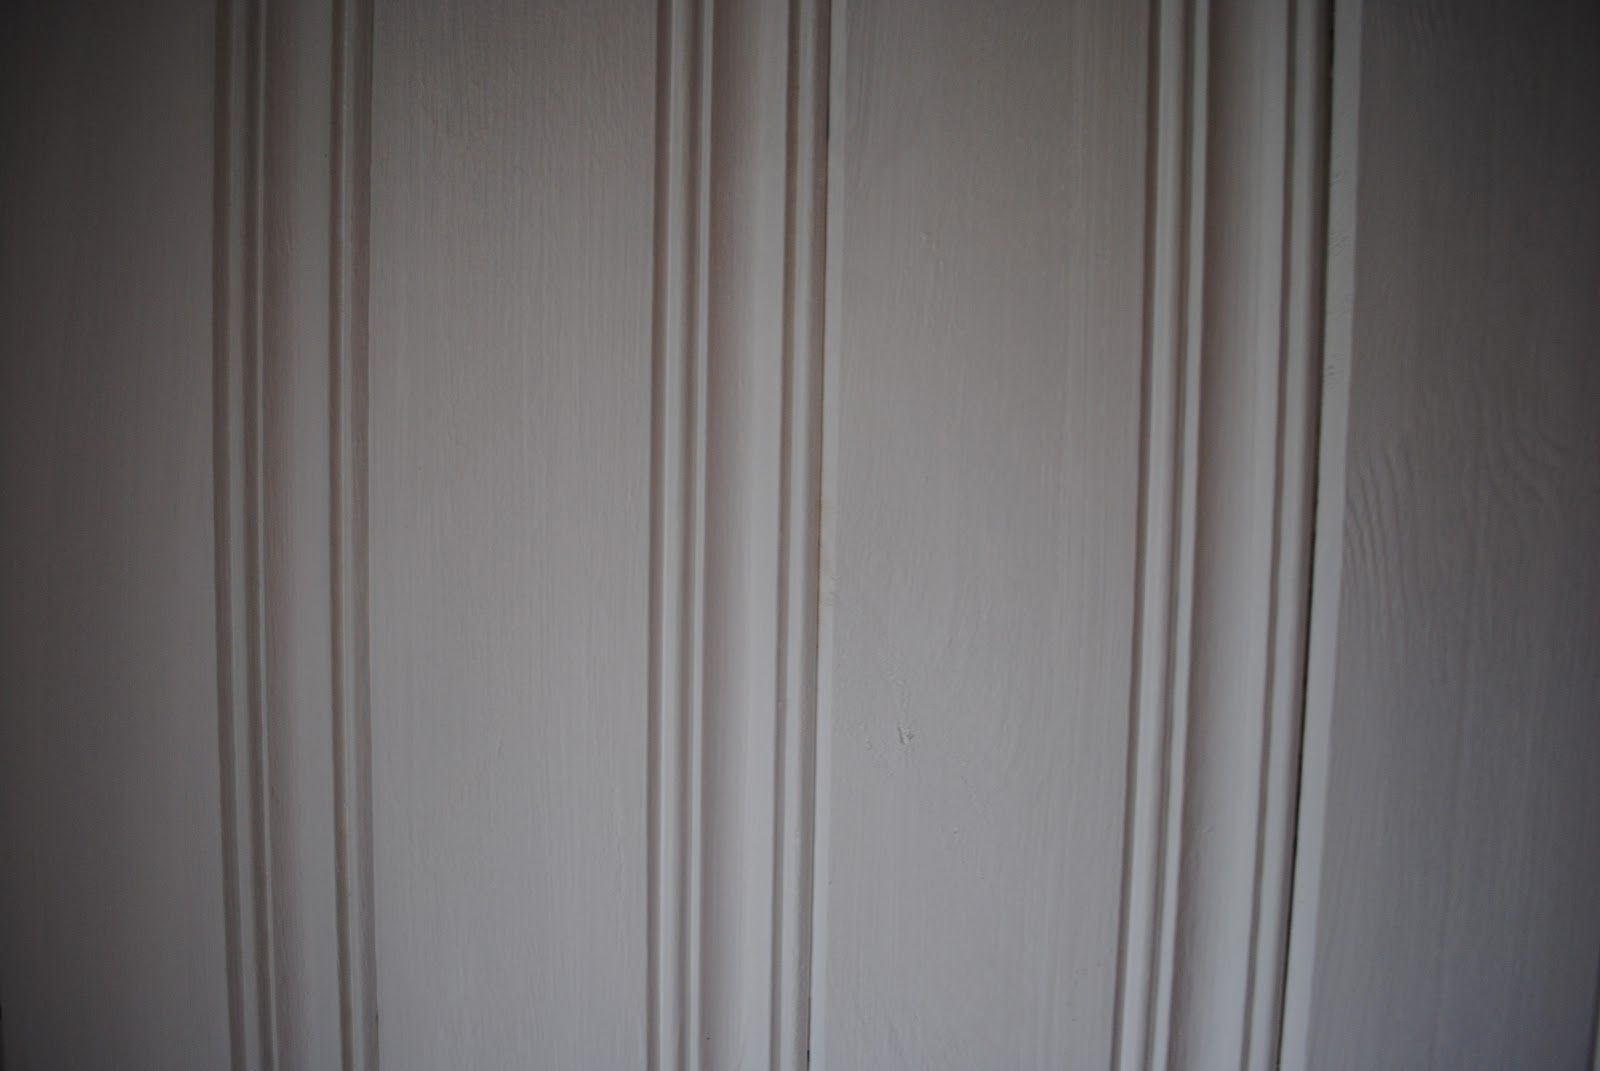 Best Painted Pine Paneling In Bathrooms Warm Grey Slightly 640 x 480